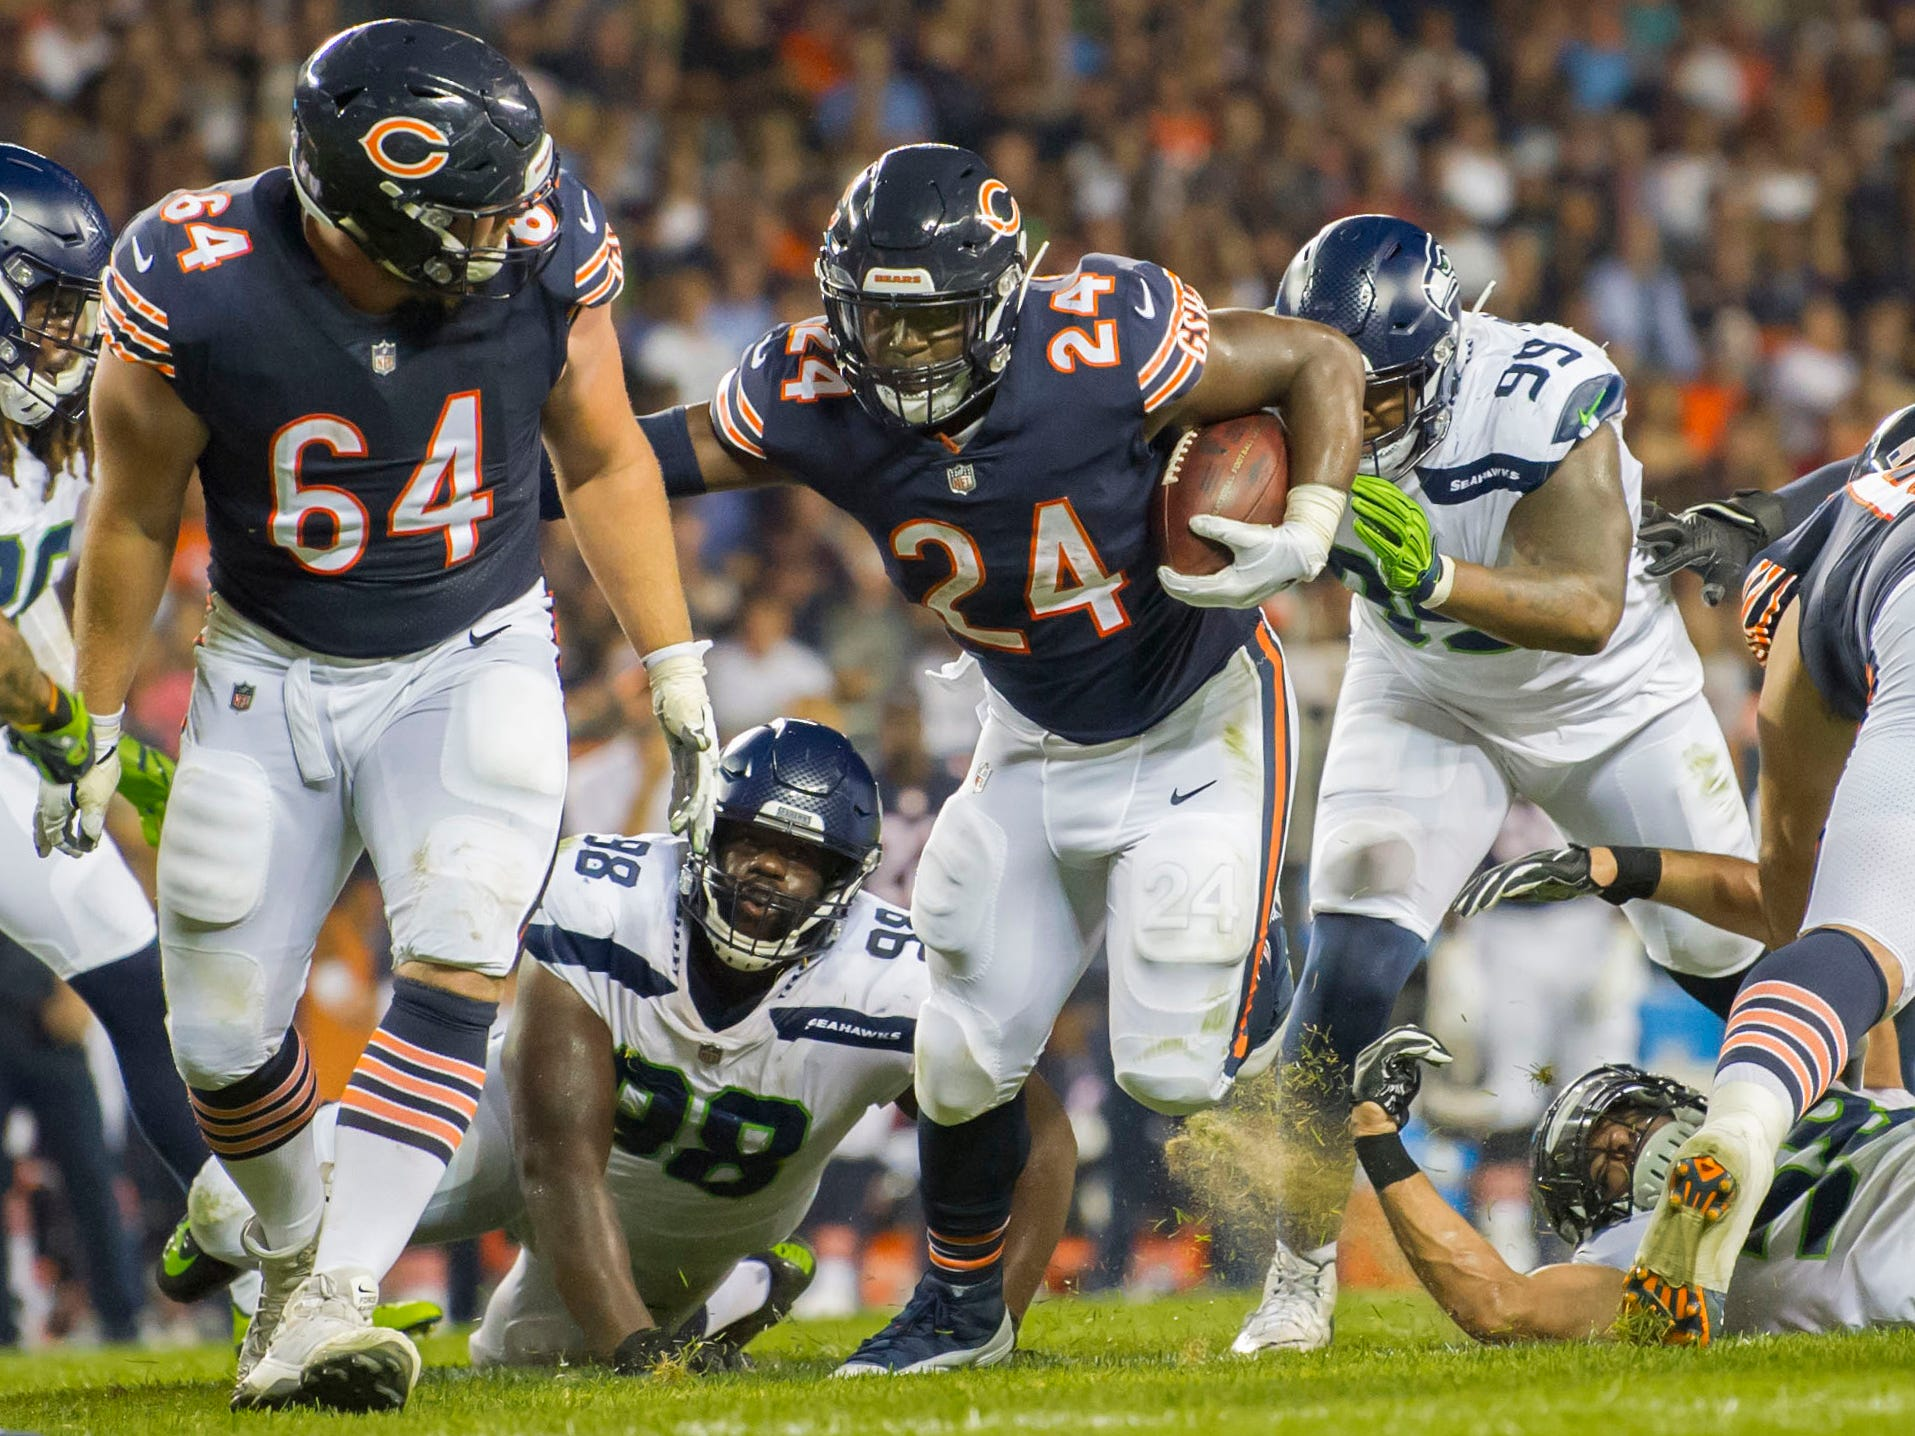 Chicago Bears running back Jordan Howard runs the ball against the Seattle Seahawks.